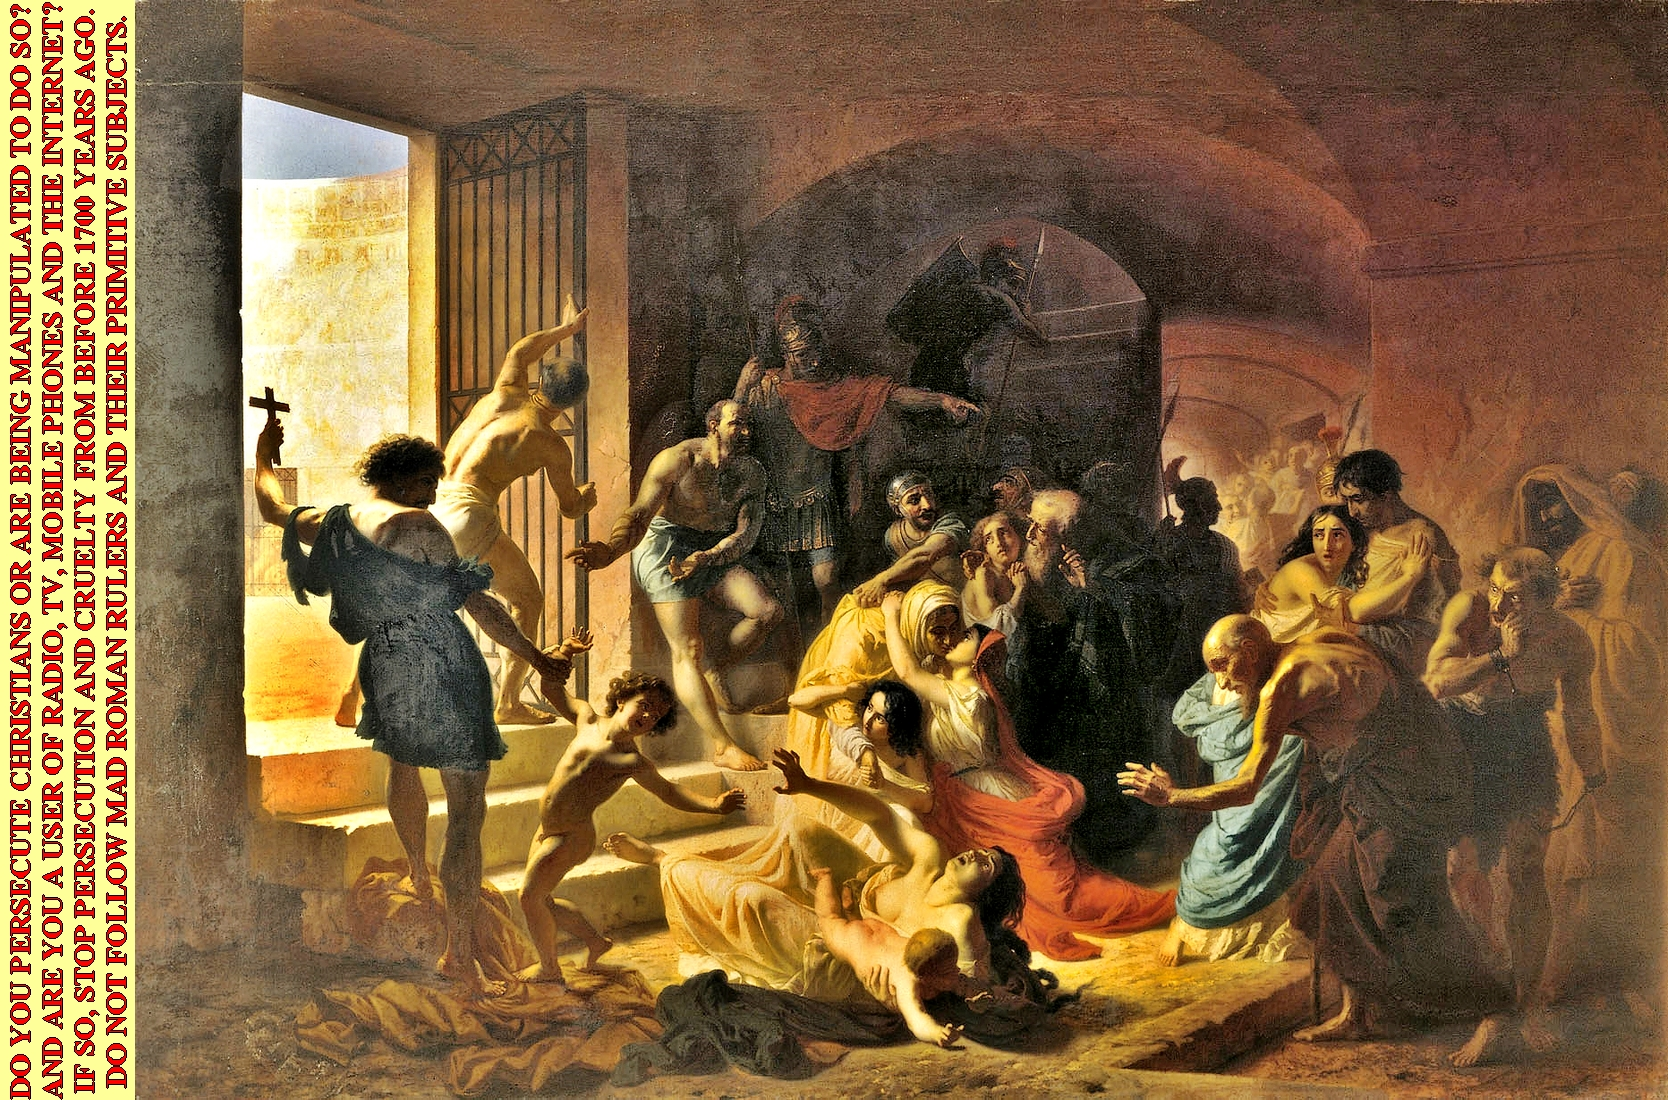 an analysis of the early christian martyrs by daniel boismier The early christian martyrs by daniel boismier leng 101 22 february 2003 outline the early christian martyrs were as courageous as they were numerous.